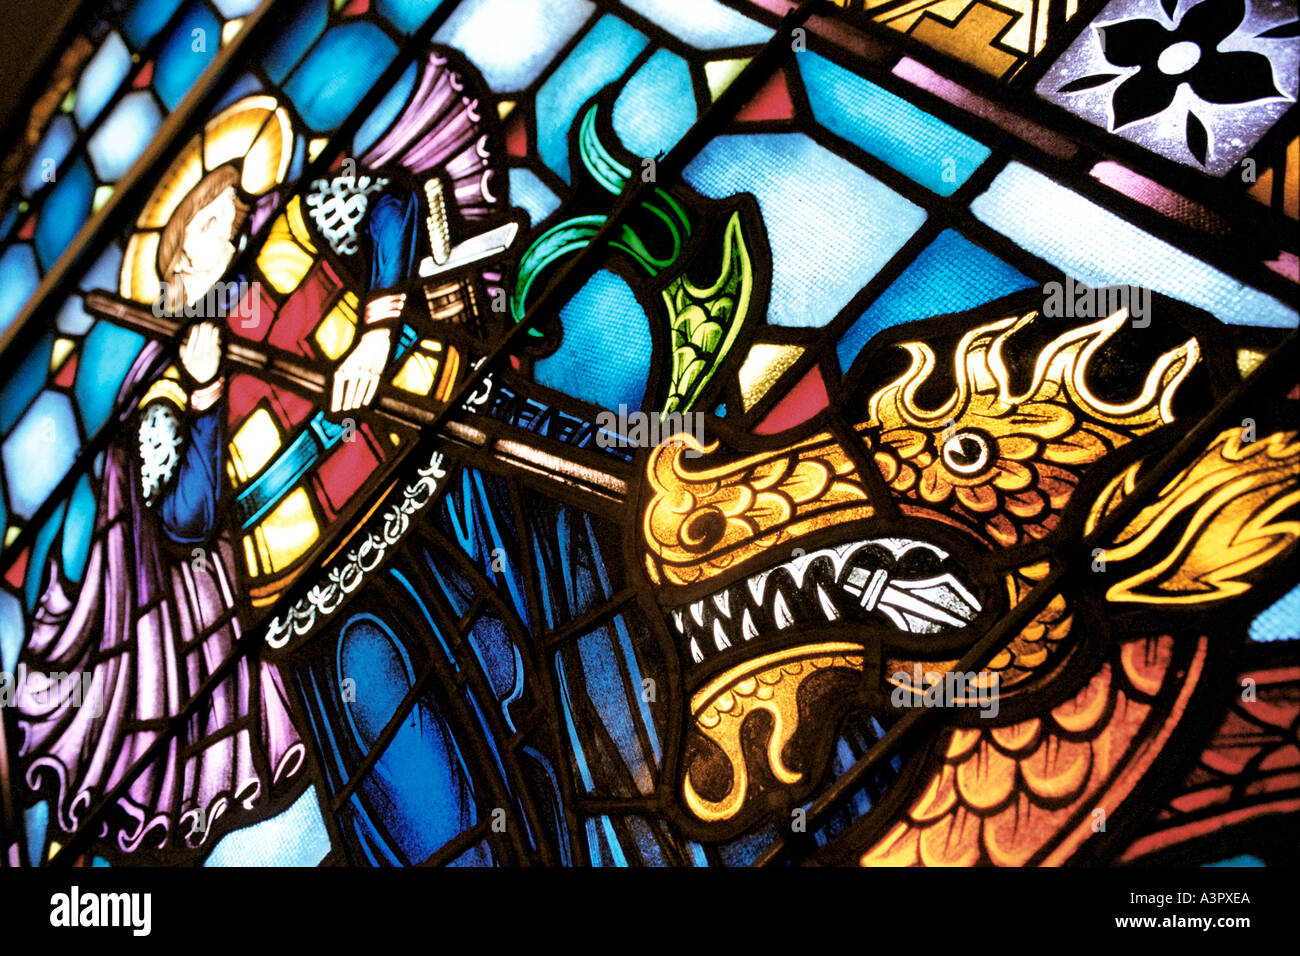 st george slaying a dragon stock photos st george slaying a dragon stock images alamy. Black Bedroom Furniture Sets. Home Design Ideas